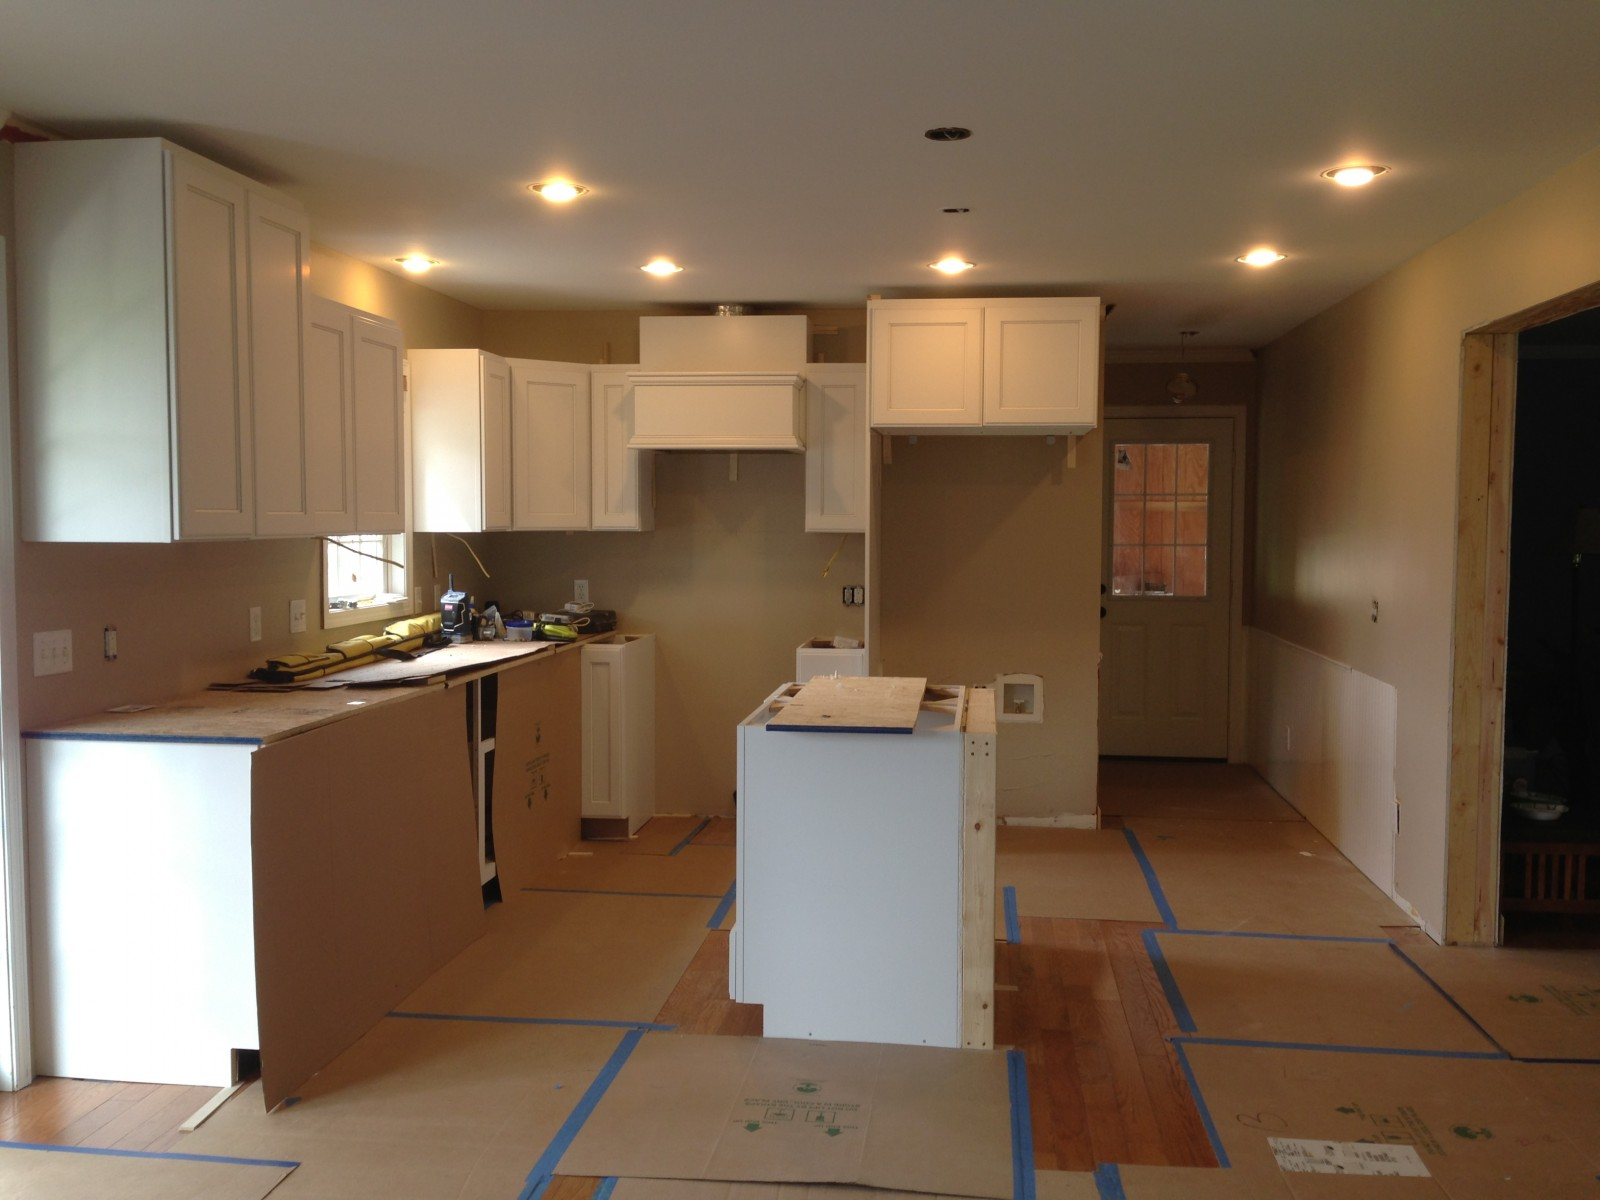 Wilmington Kitchen Family Room Amp Laundry Room Cabinet Installation Remodeling Designs Inc